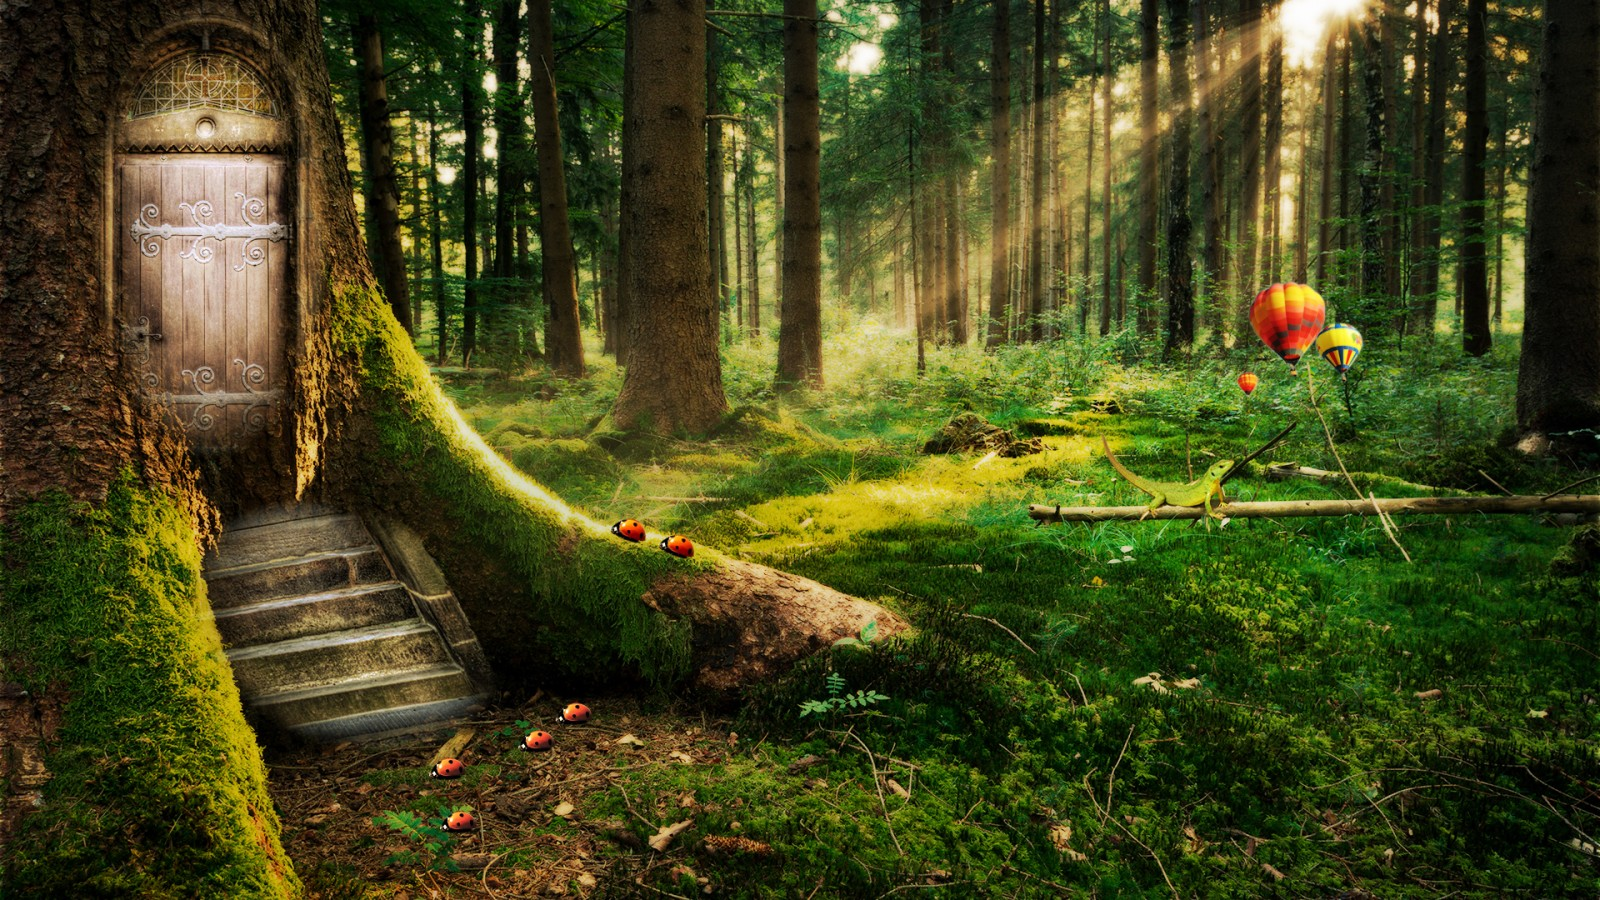 Hd Wallpaper Ipad 3 Enchanted Forest Wallpapers Hd Wallpapers Id 11925